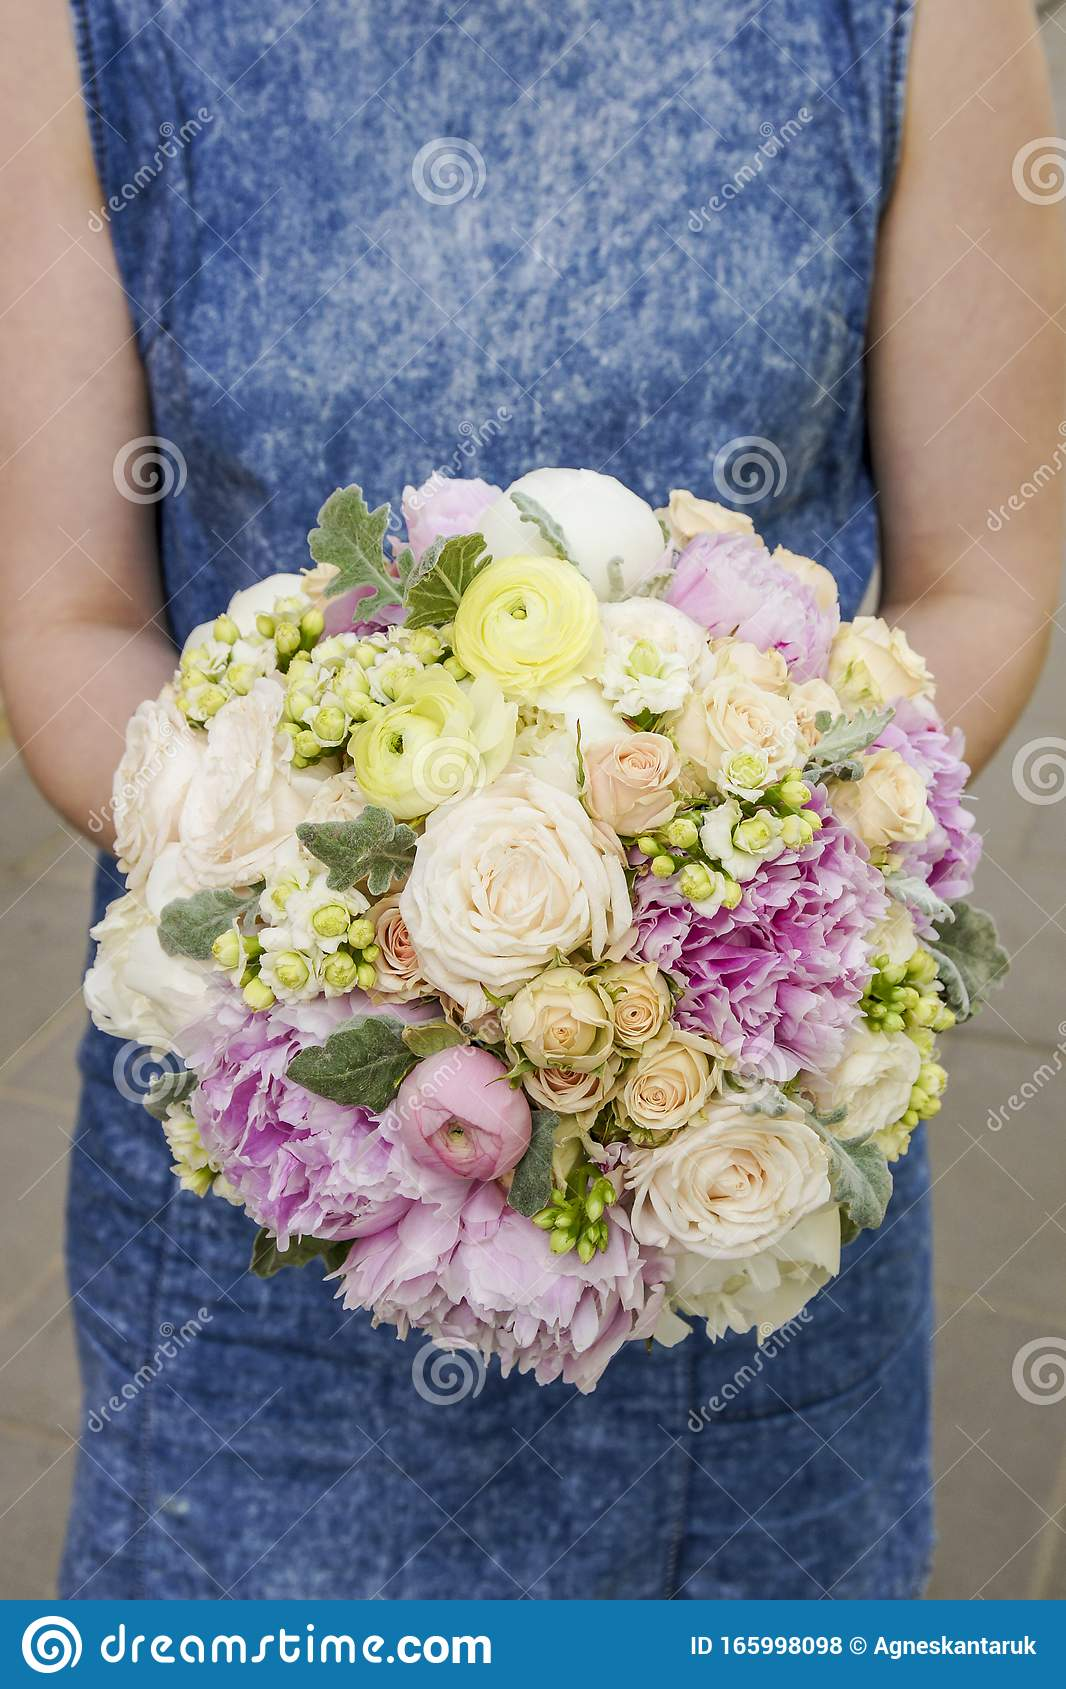 Woman Holding Wedding Bouquet With Peonies Roses And Ranunculus Flowers Stock Photo Image Of Beauty Birthday 165998098